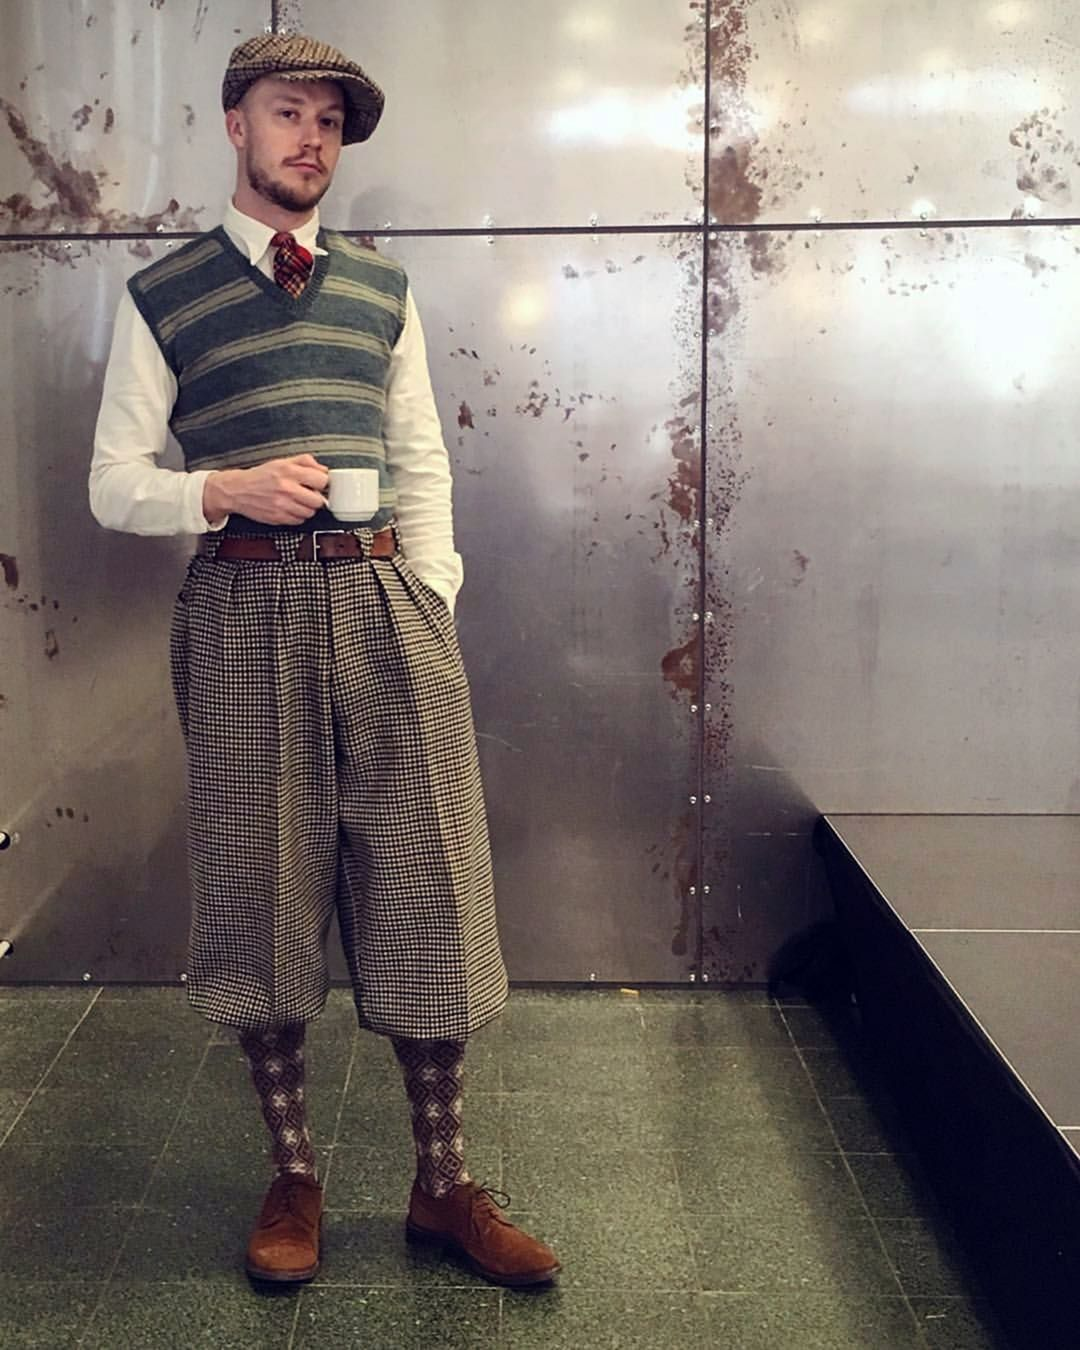 Look Stylish And Fashionable With 13 Men S Vintage Outfits Ideas Fashions Nowadays In 2020 Hipster Outfits Men Hipster Mens Fashion Vintage Outfits